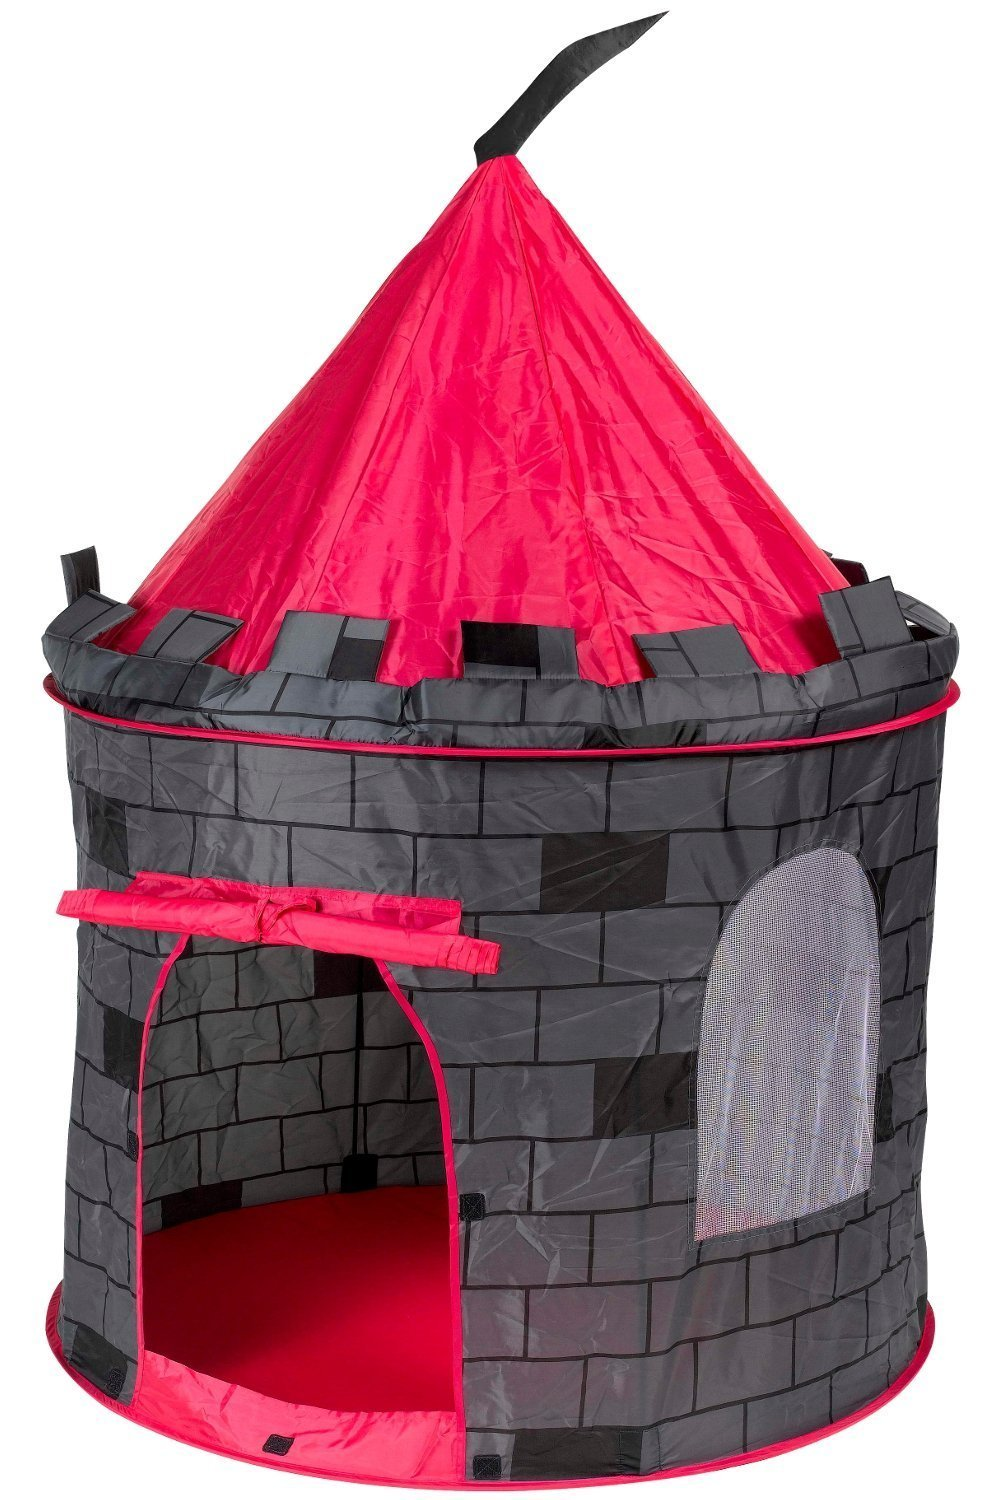 Knight Castle Prince House Kids Play Tent  sc 1 st  Bestter Choices Bestter Living & EocuSun Pop Up Kids Play Tent and Tunnel With Ball Camo - Bestter ...